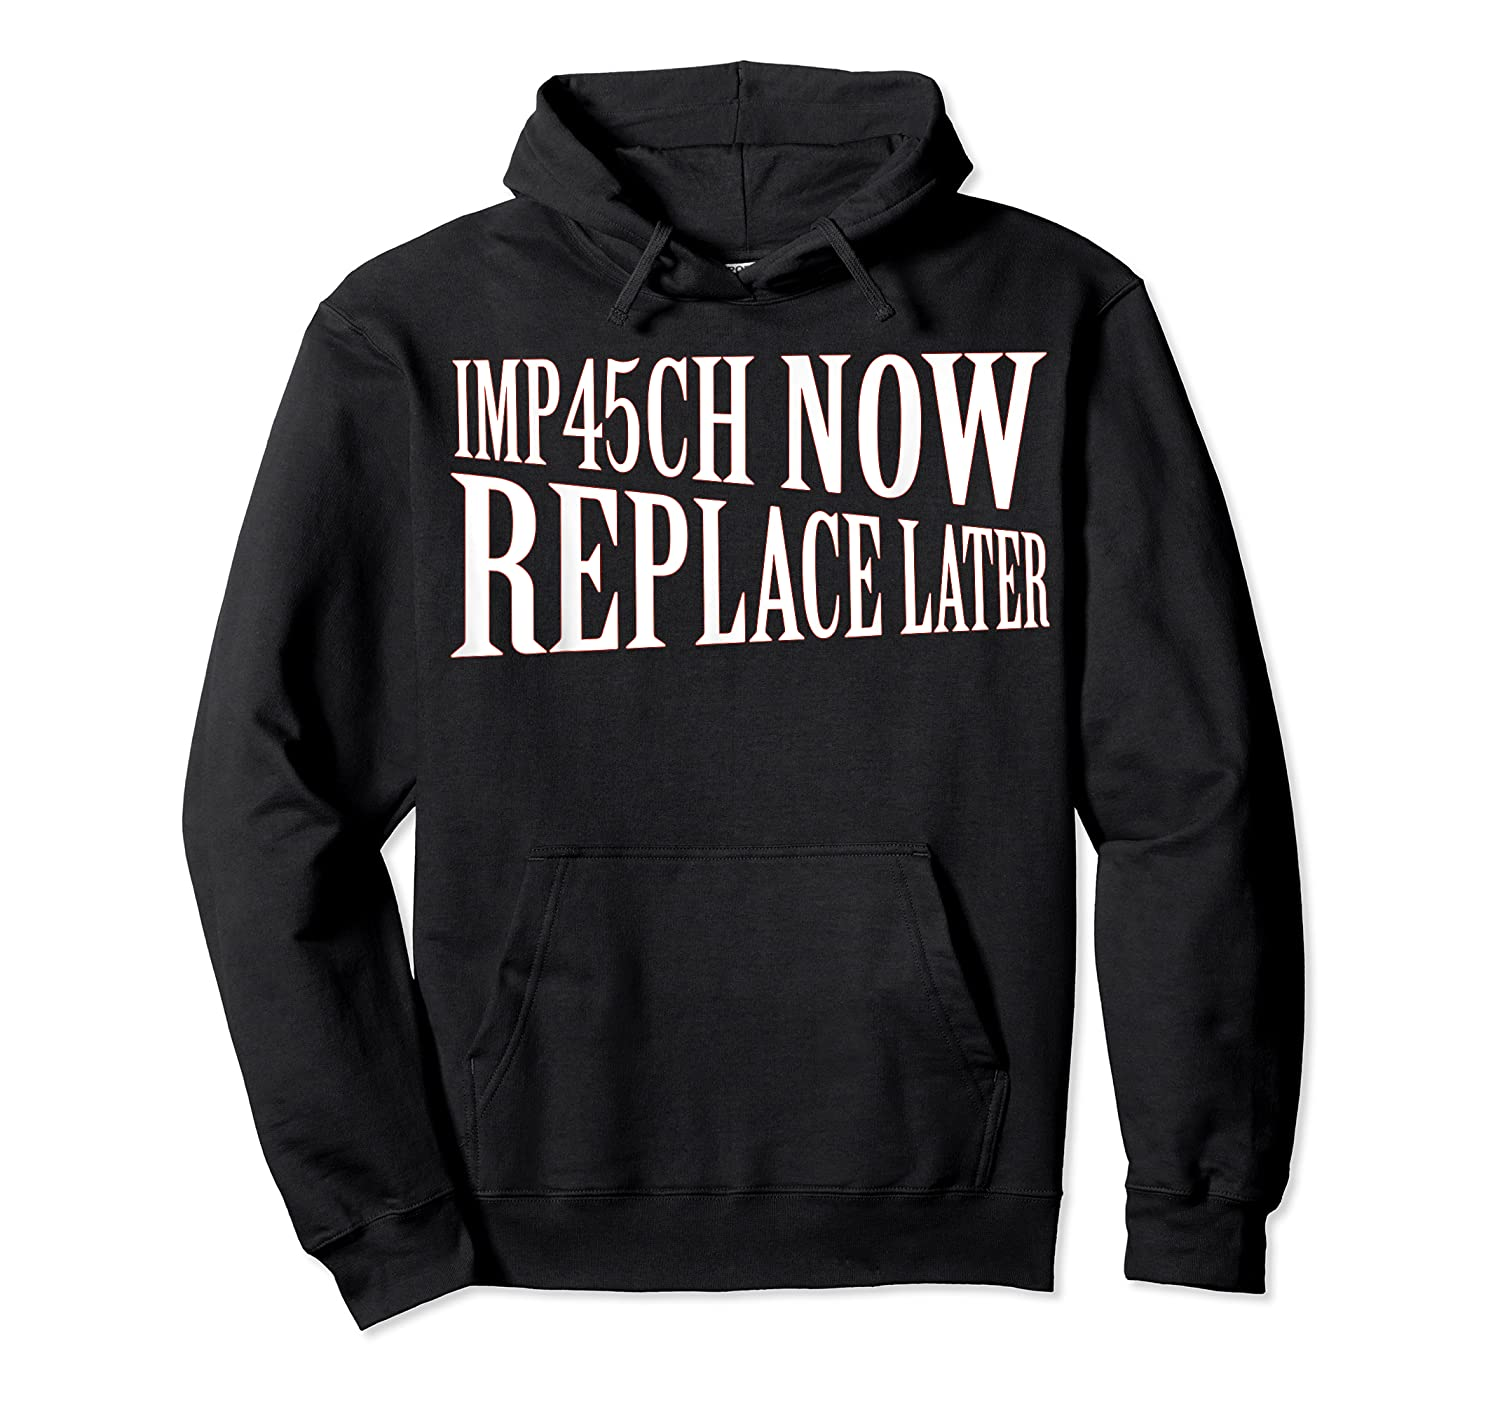 Impeach Trump Now Replace Trump Later Shirts Unisex Pullover Hoodie